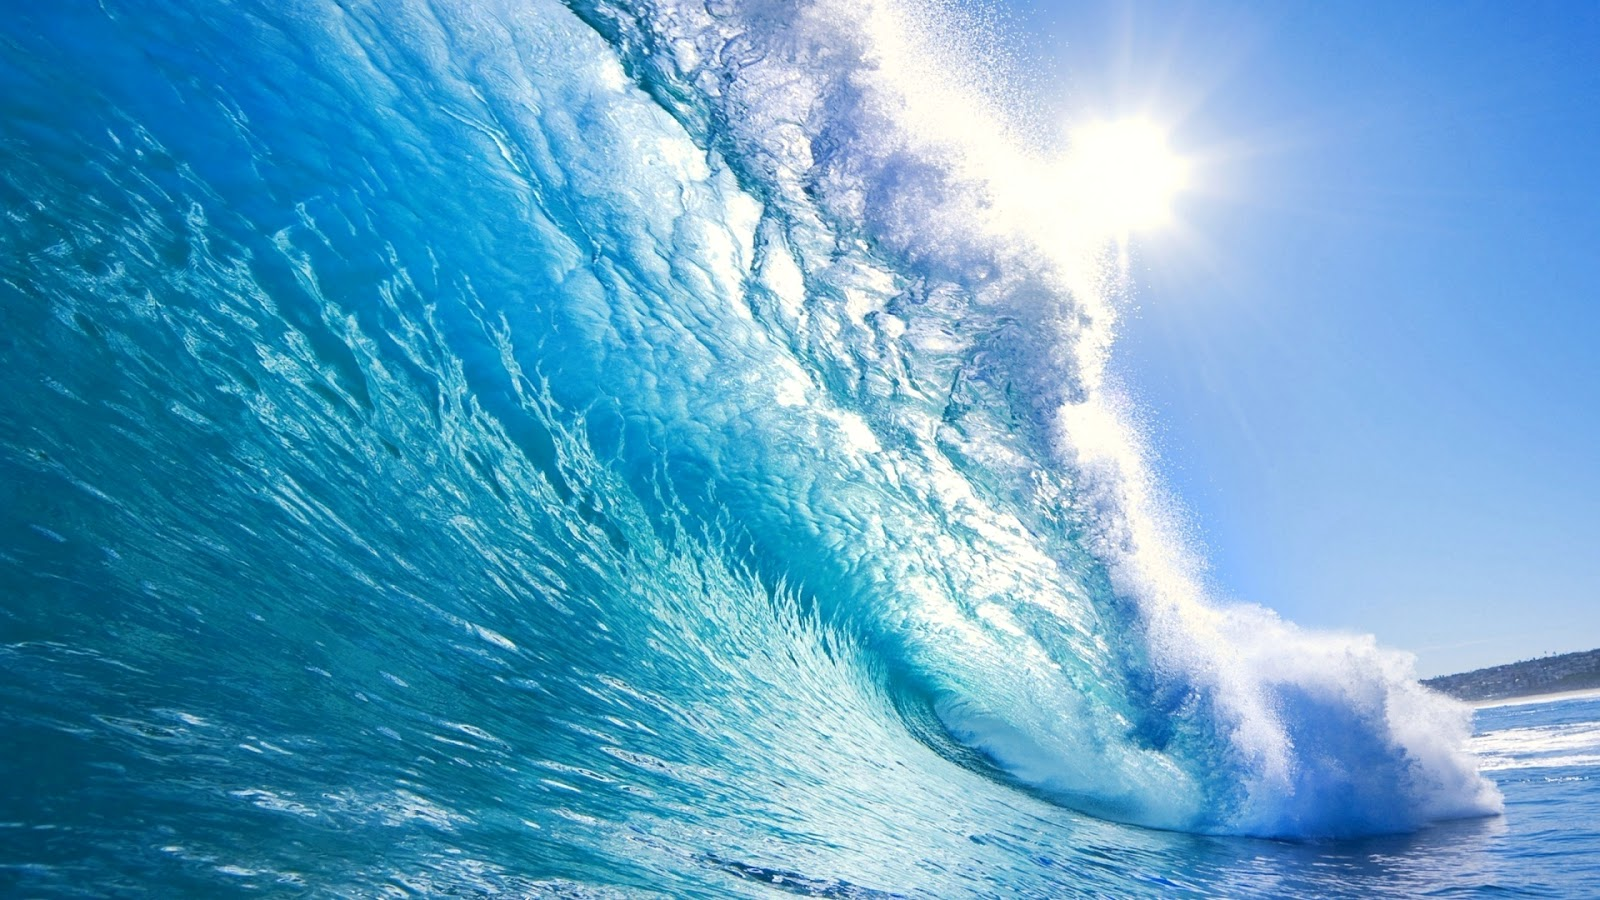 Water Waves Wallpaper Zone Wallpaper Backgrounds